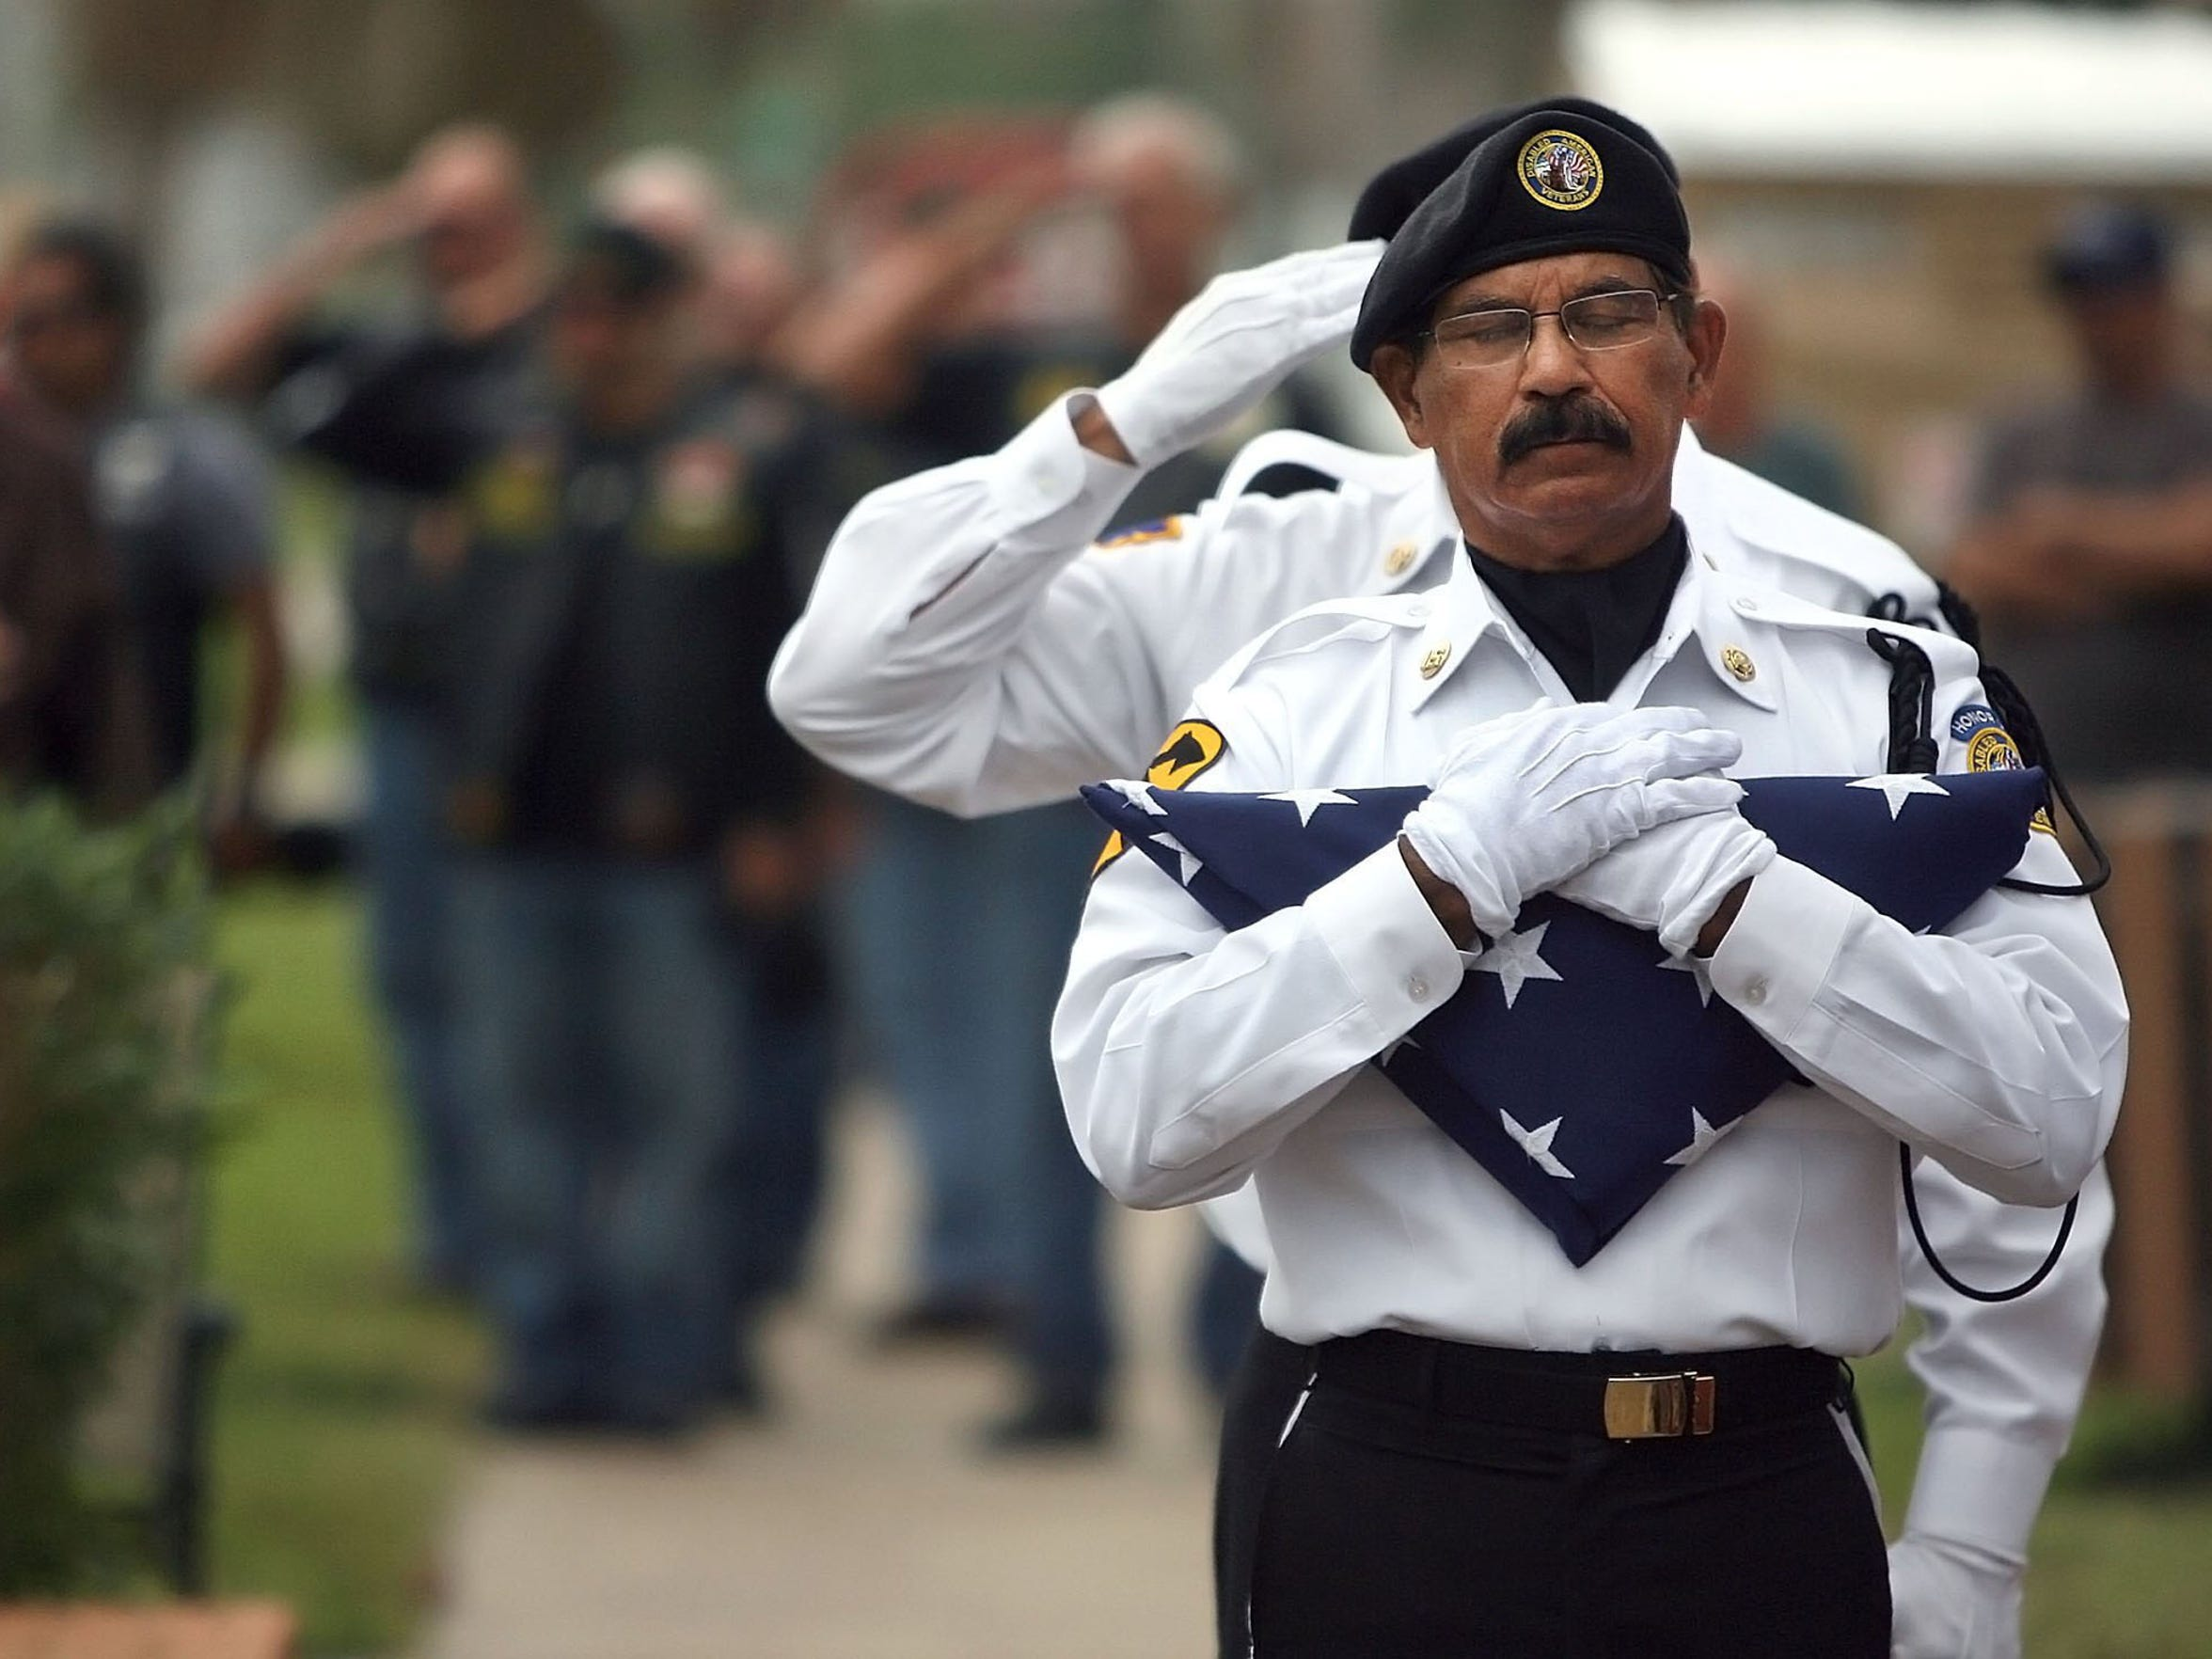 Todd Yates/Caller-TimesTony Acevedo, member of the Veterans Band of Corpus Christi Color Guard, cradles the American flag as Taps is played during Veterans Day ceremony at Sherrill Park in 2014.